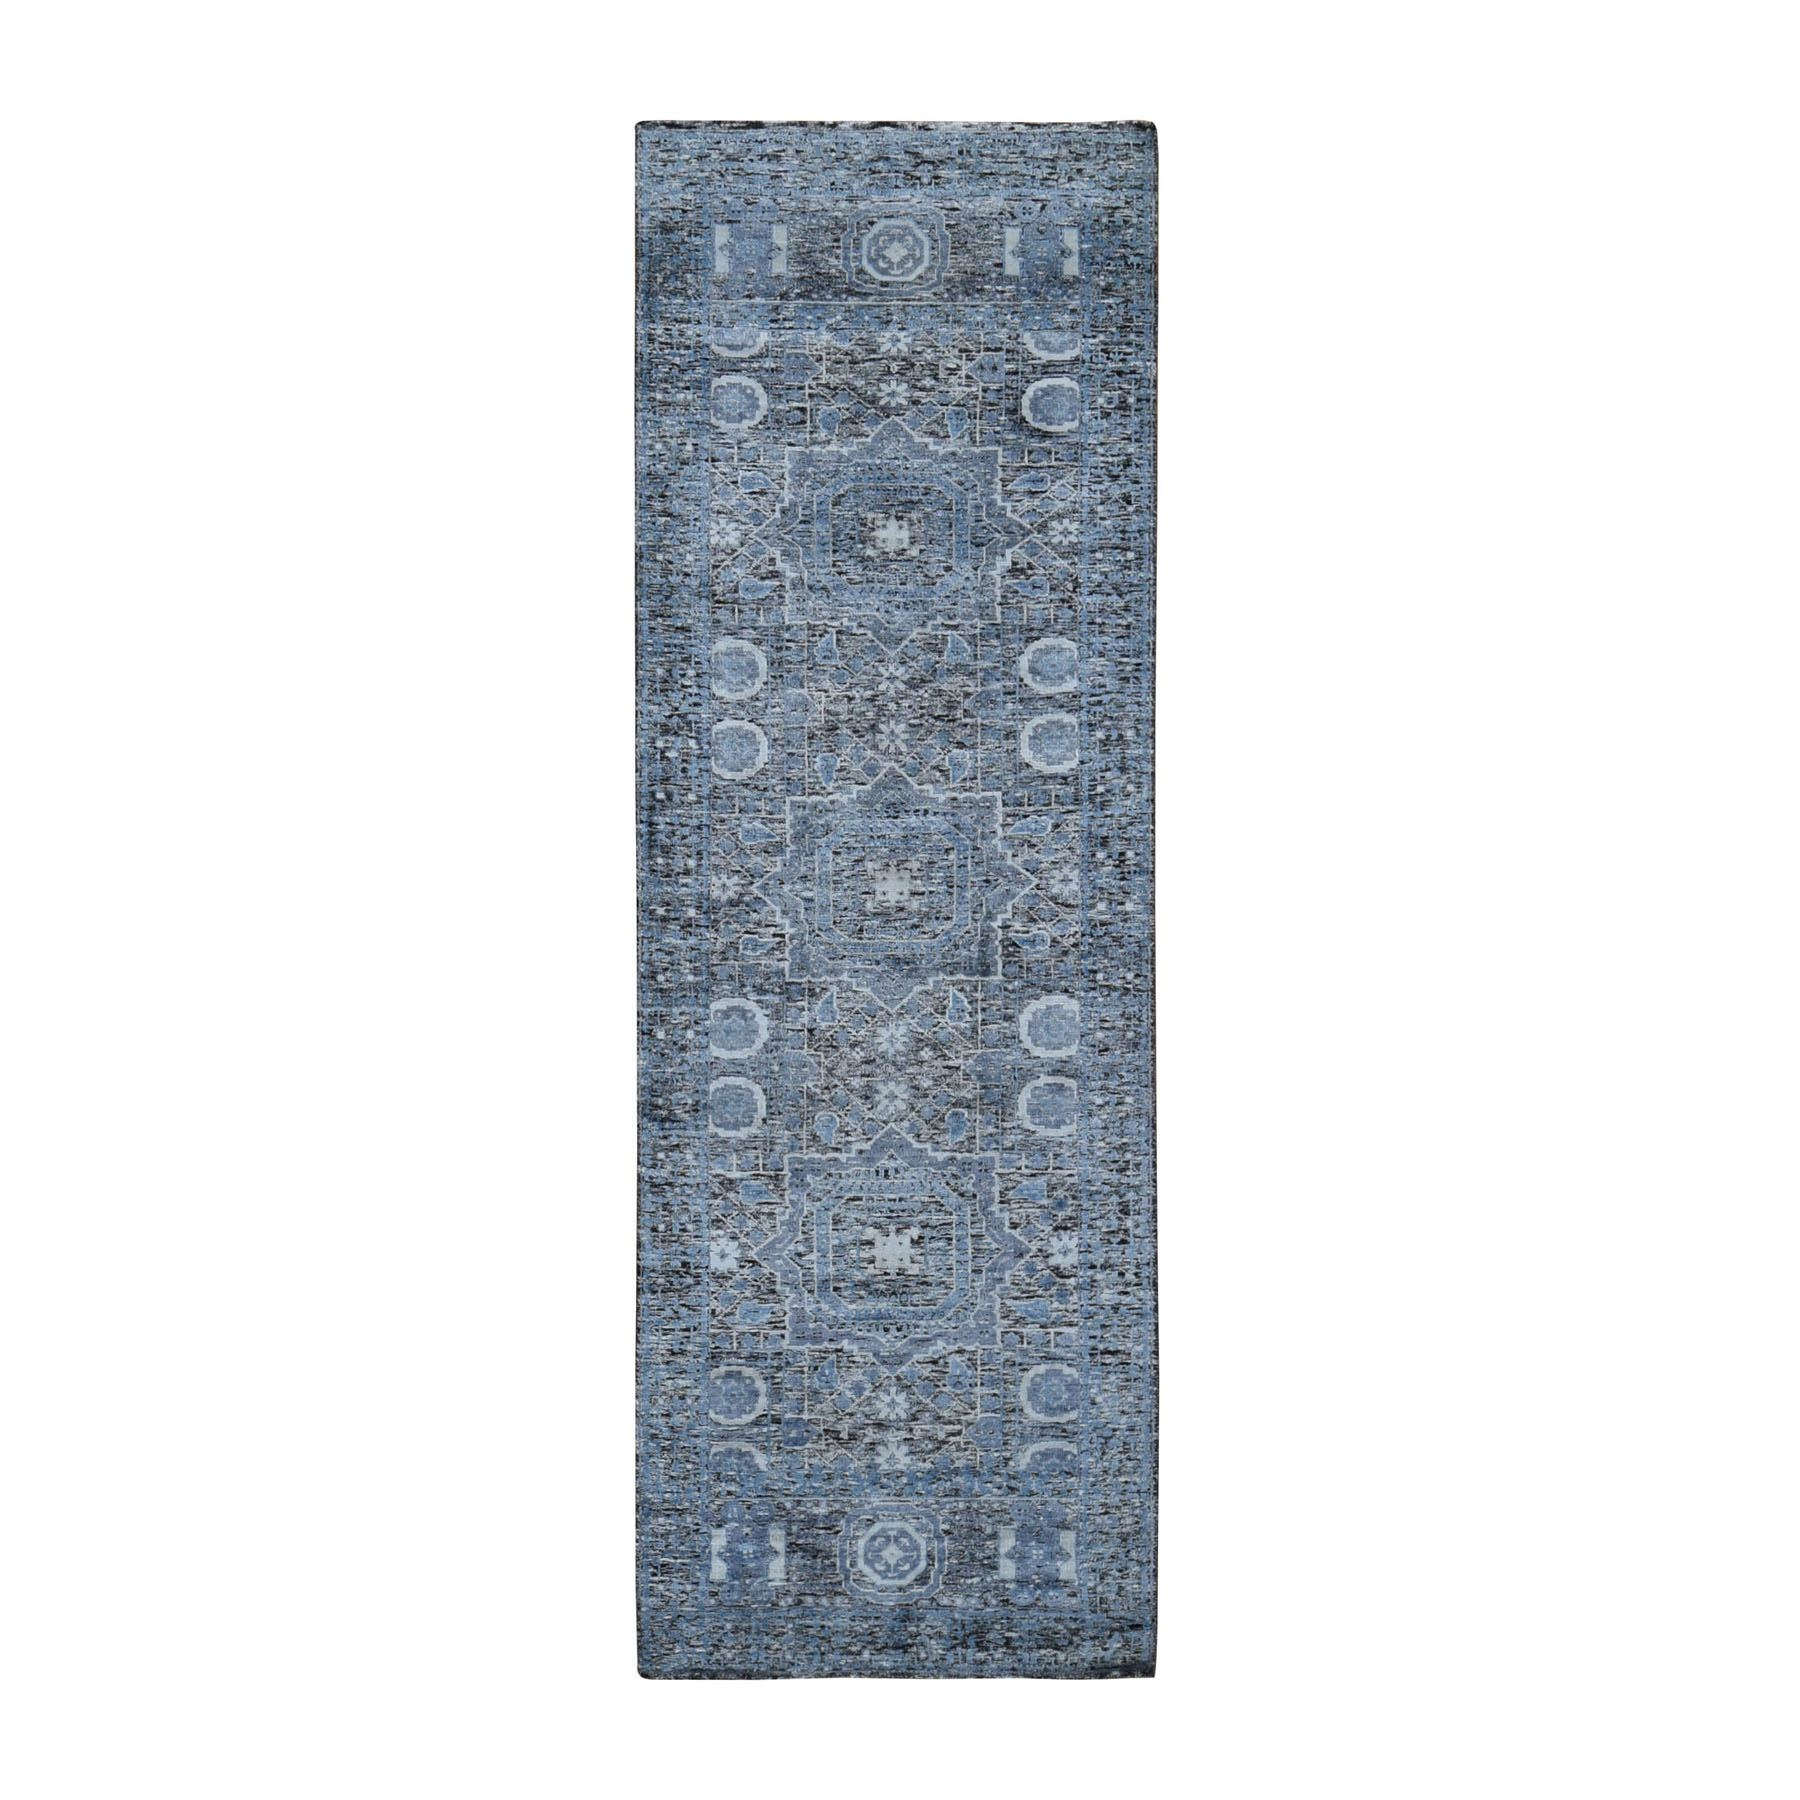 Intricate Collection Hand Knotted Blue Rug No: 198912